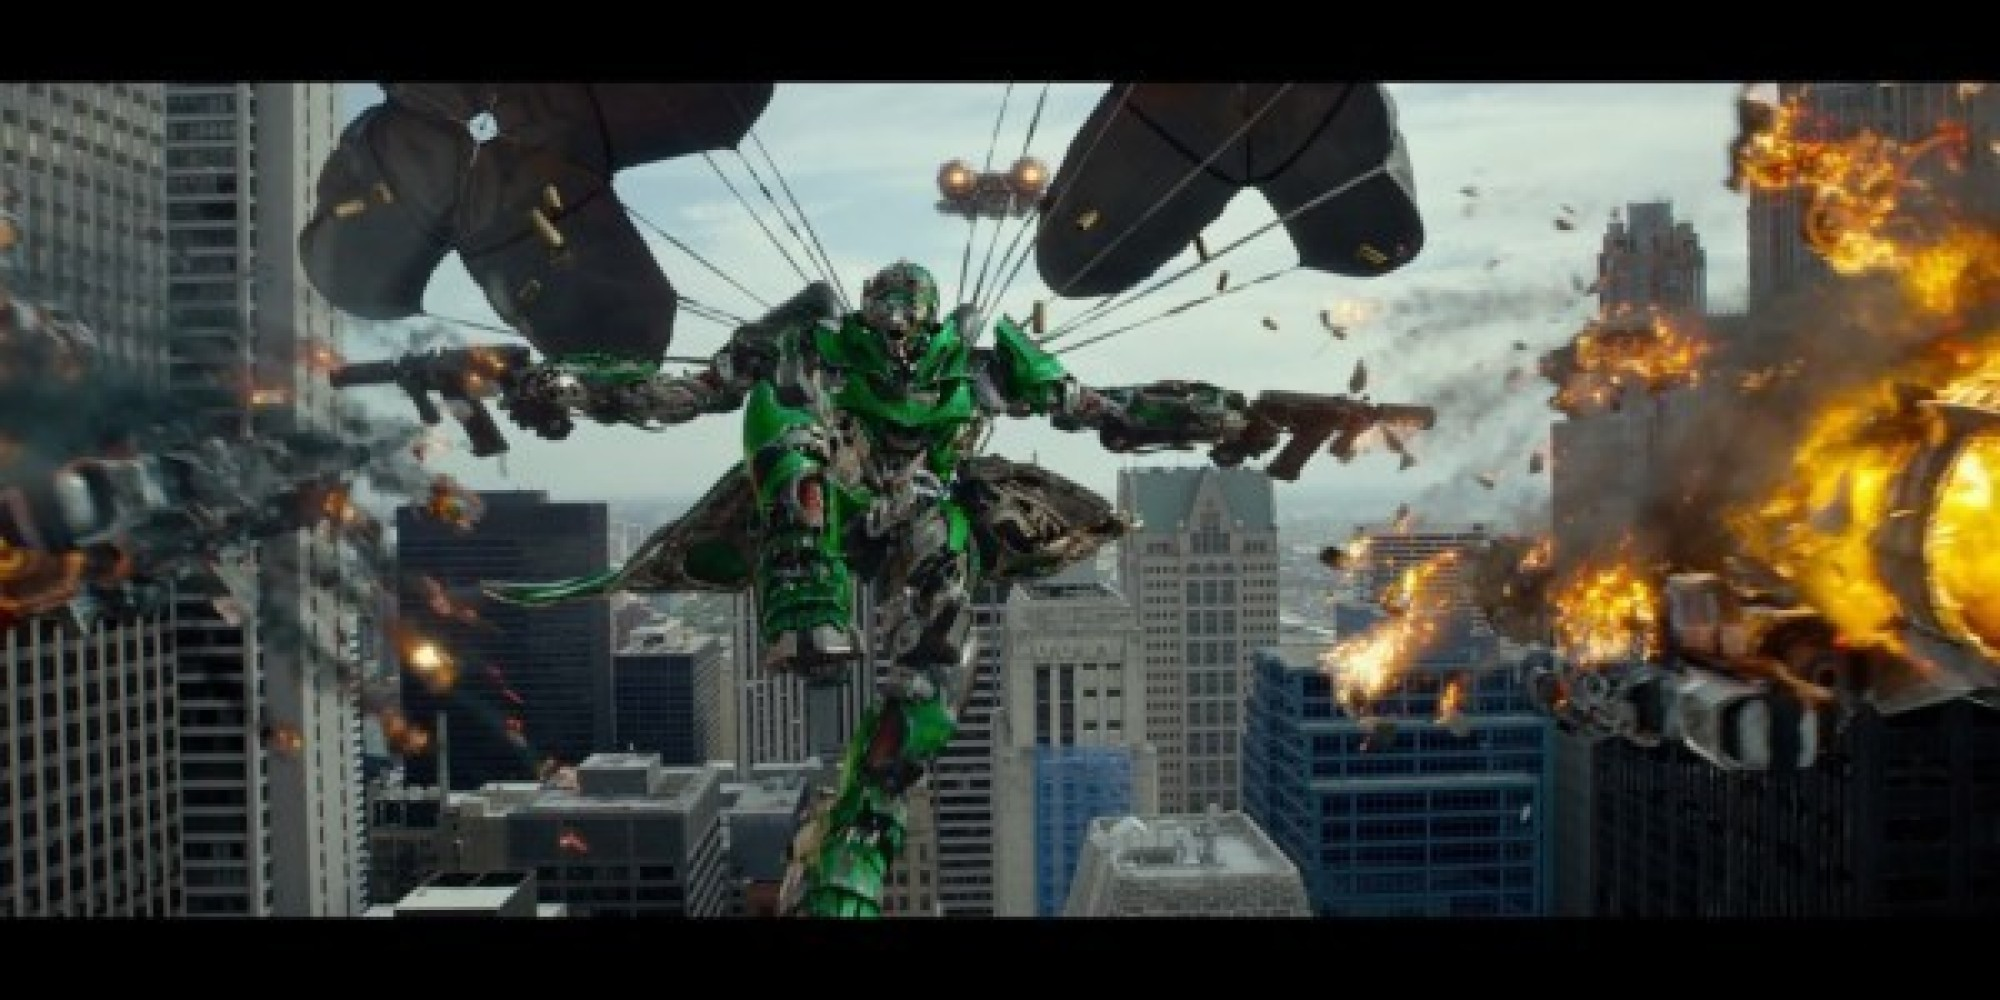 5 reasons people with brains shouldn't see transformers: age of